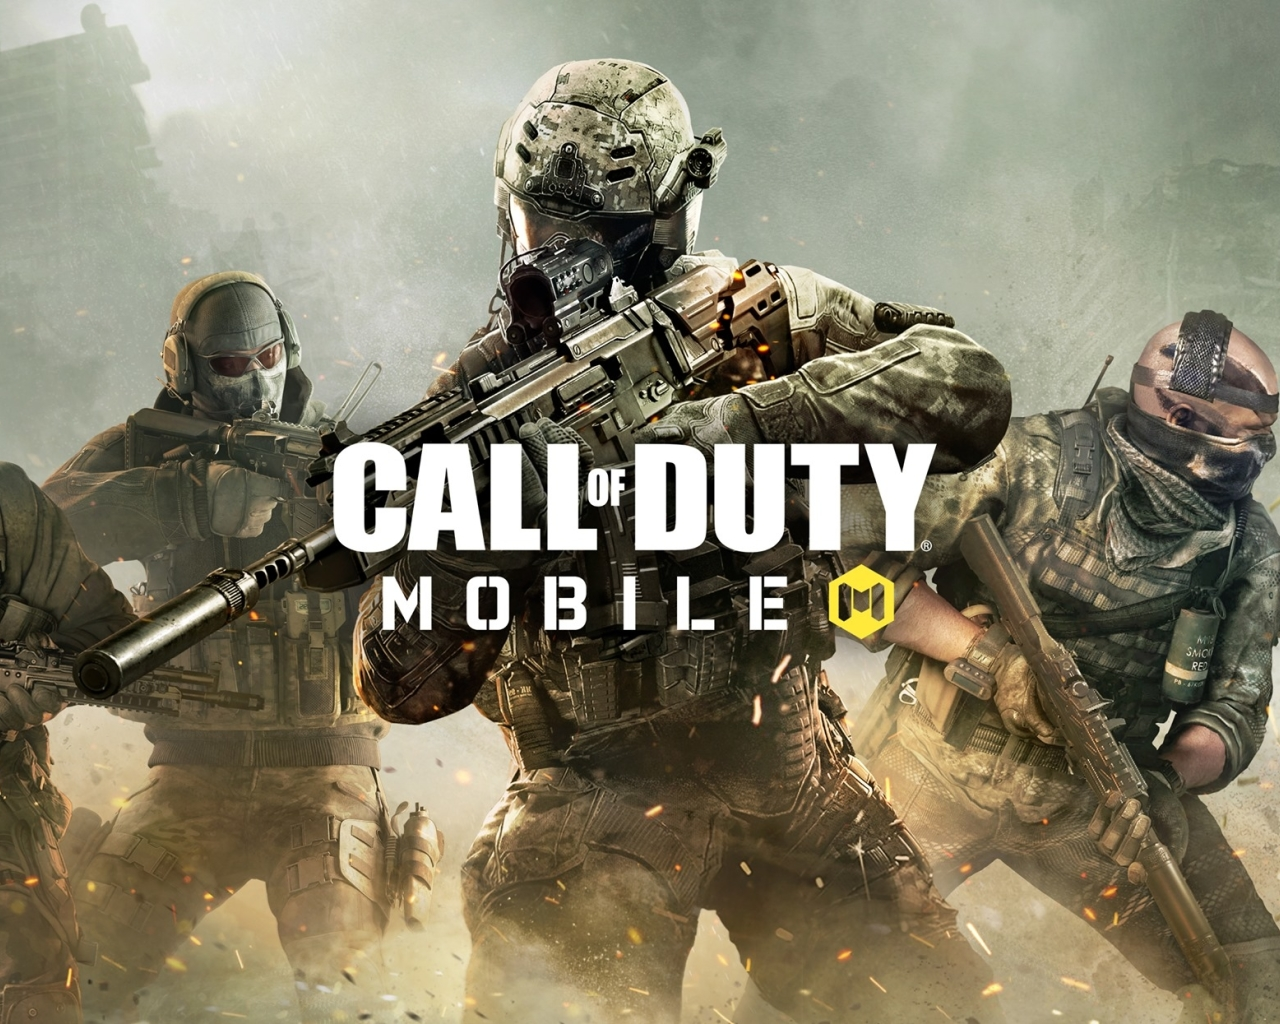 1280x1024 Call Of Duty Mobile Game 1280x1024 Resolution Wallpaper 1280x1024